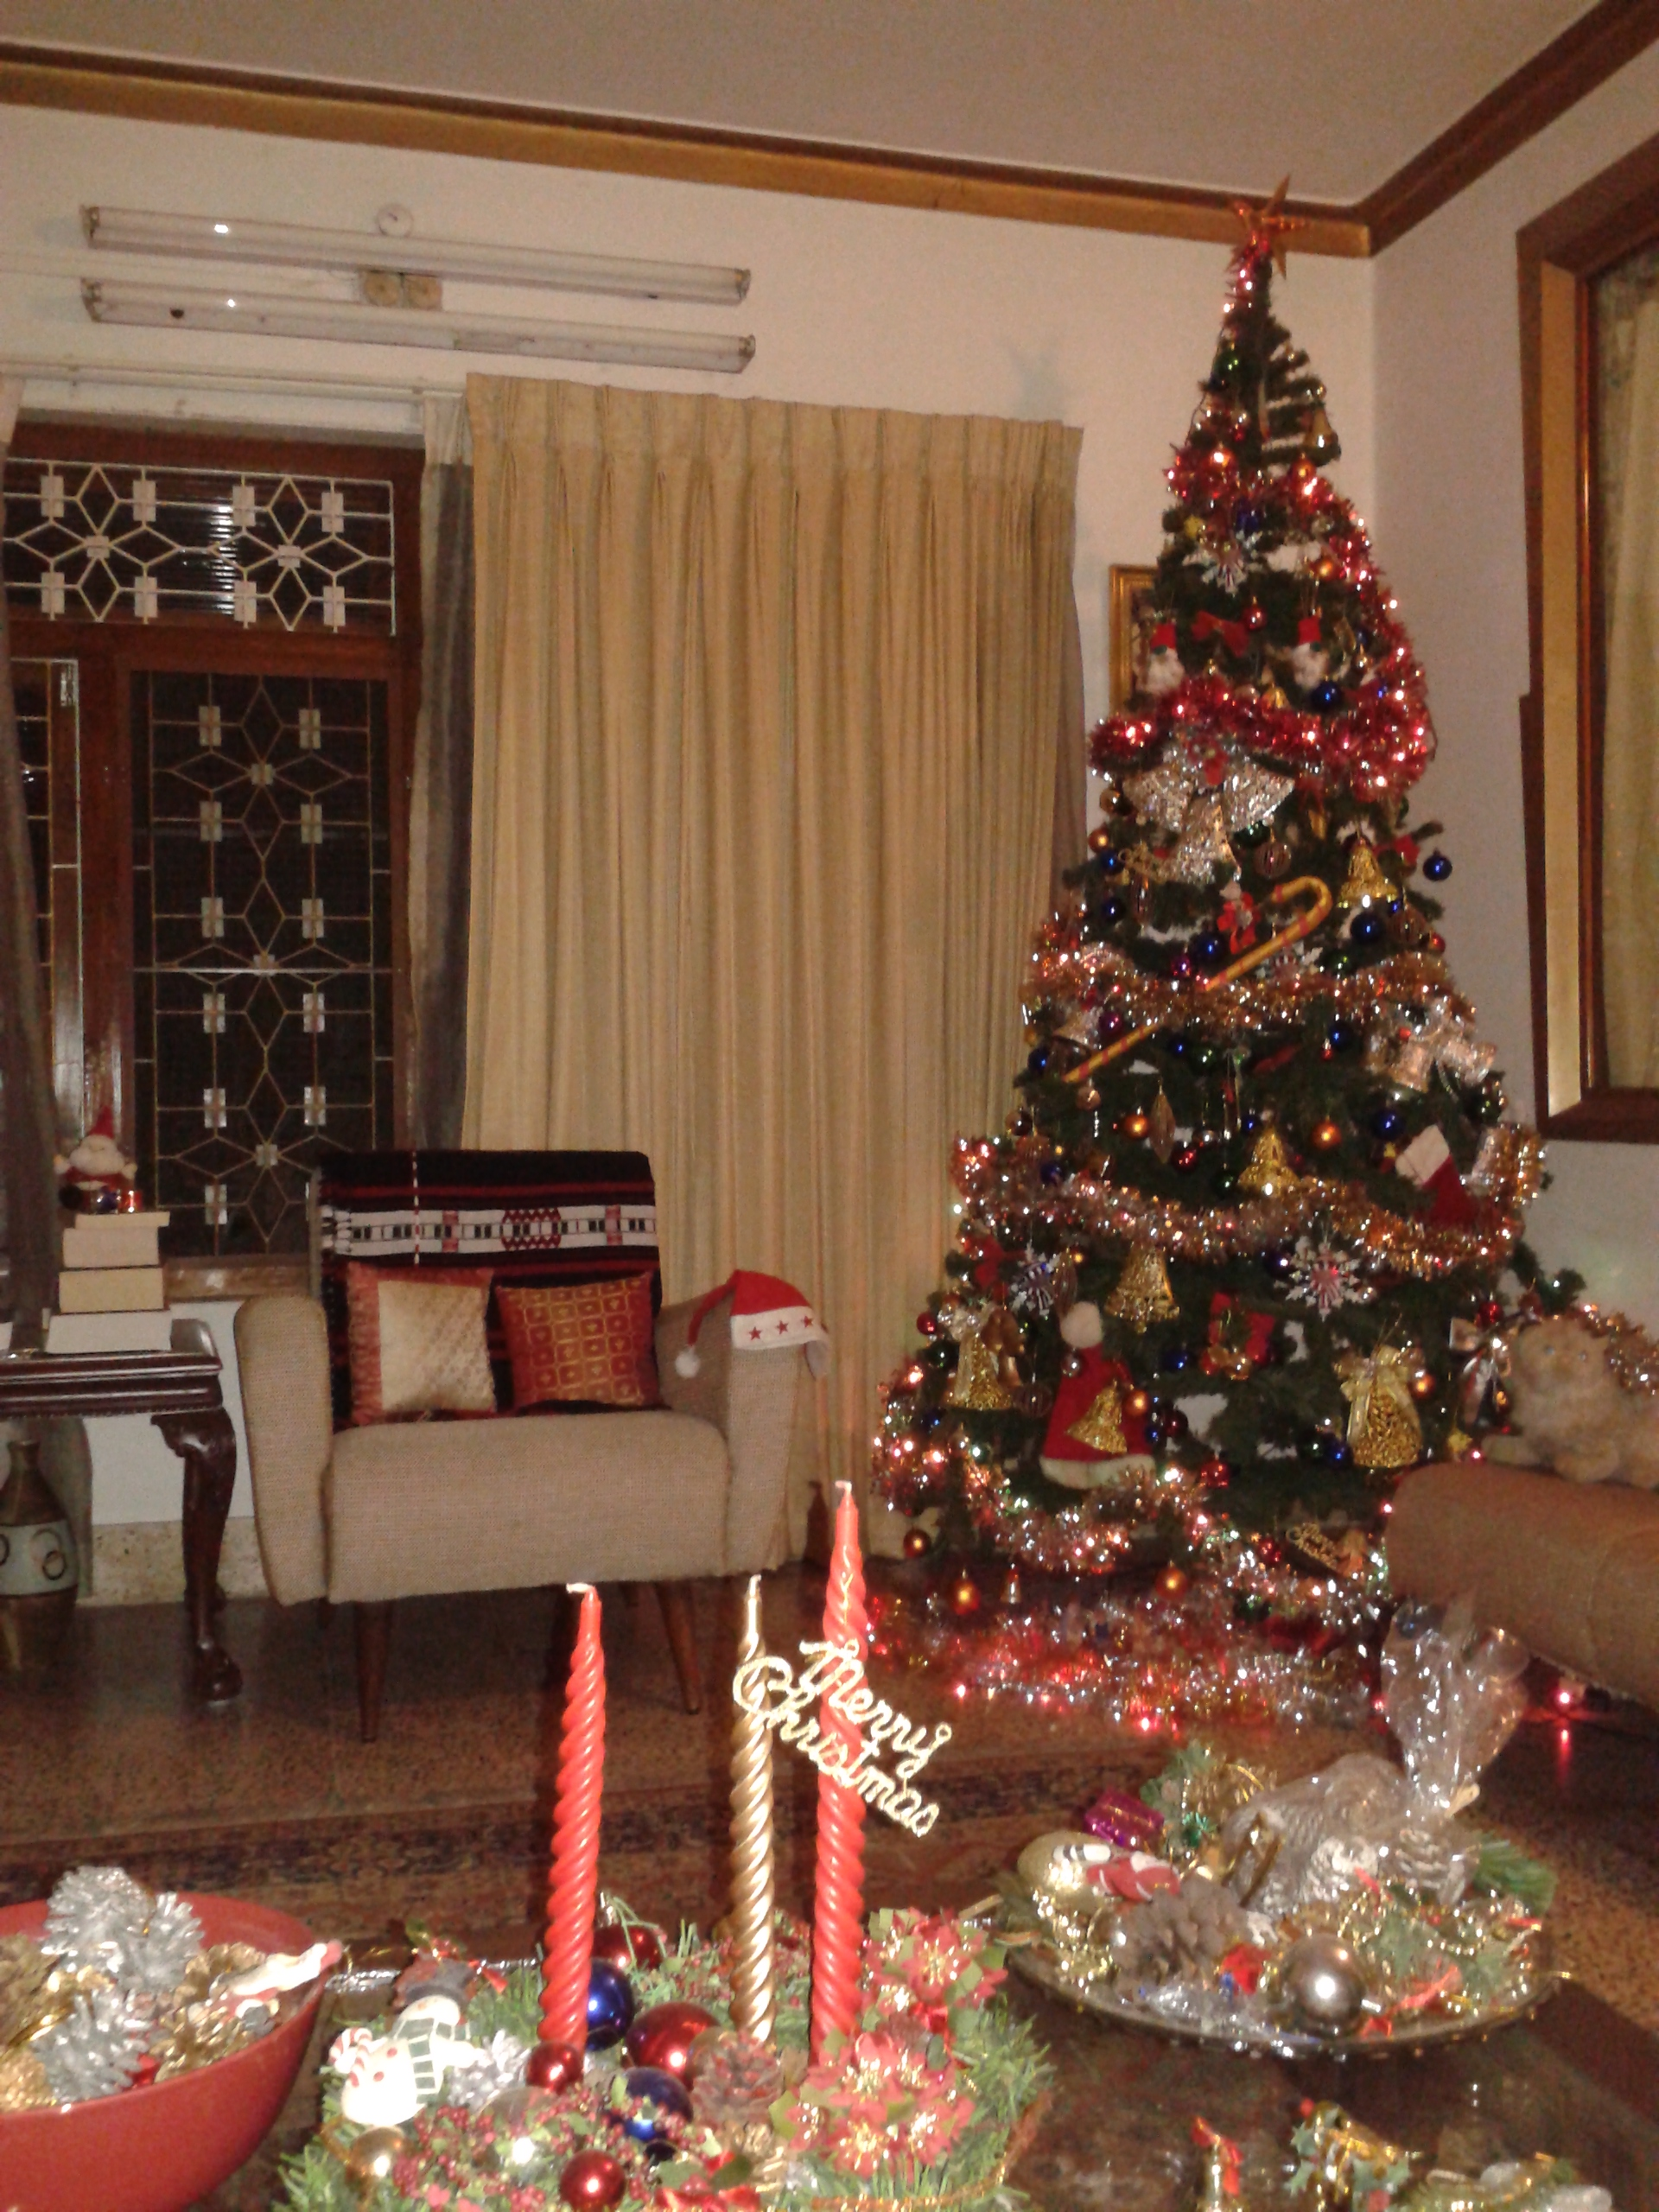 File:Christmas Tree in a home Kerala, India..jpg ...